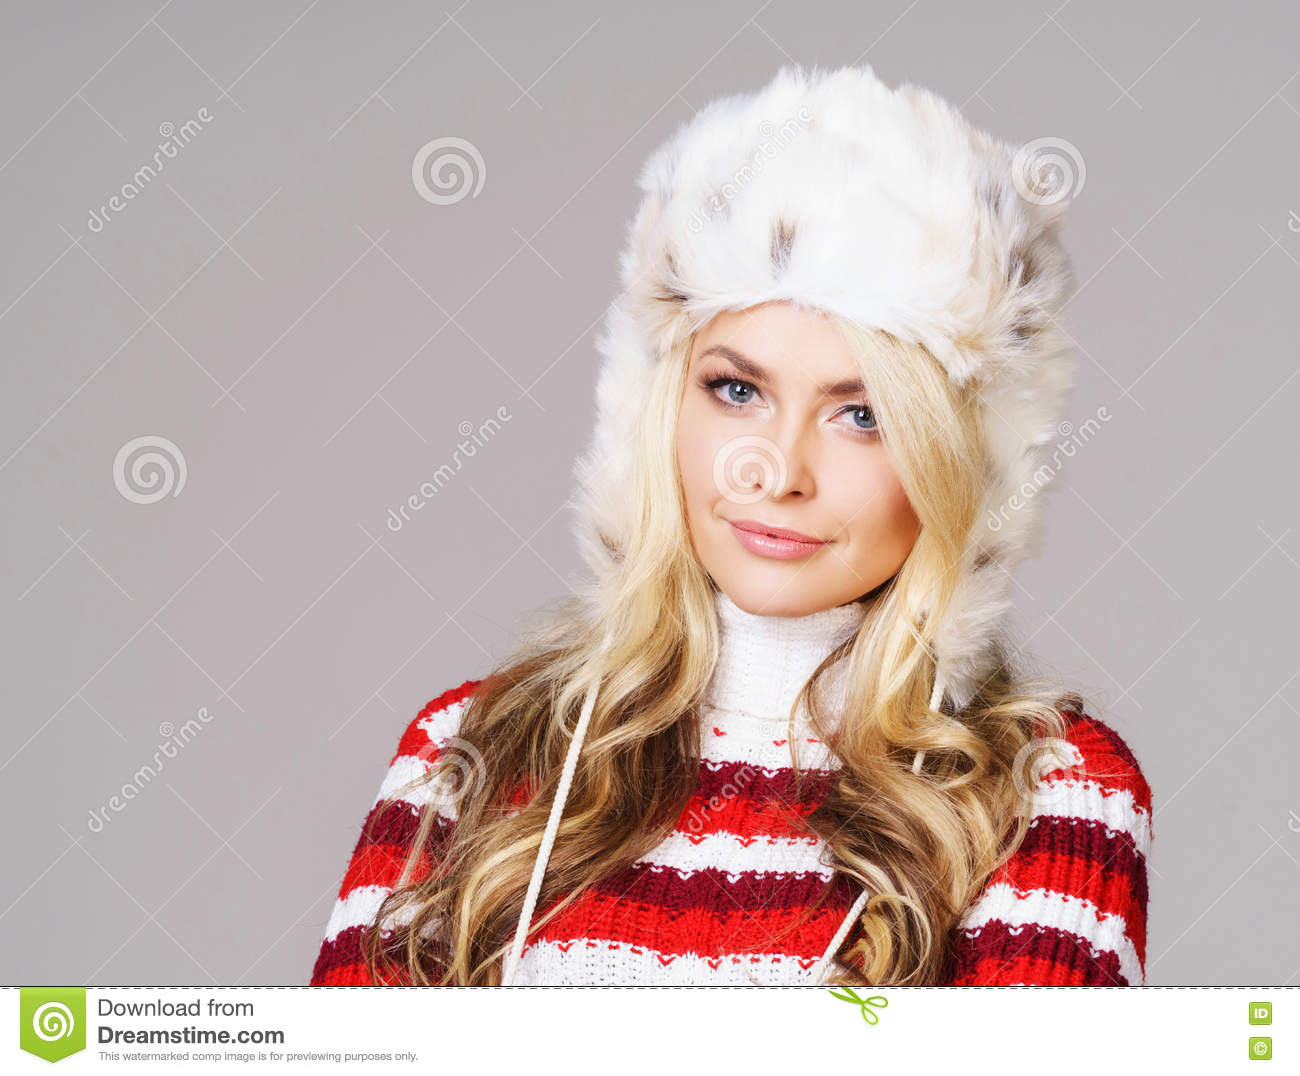 a8ae57d7e5ff Portrait of young and beautiful woman in winter wear. Grey background.  Christmas, xmas, x-mas concept.